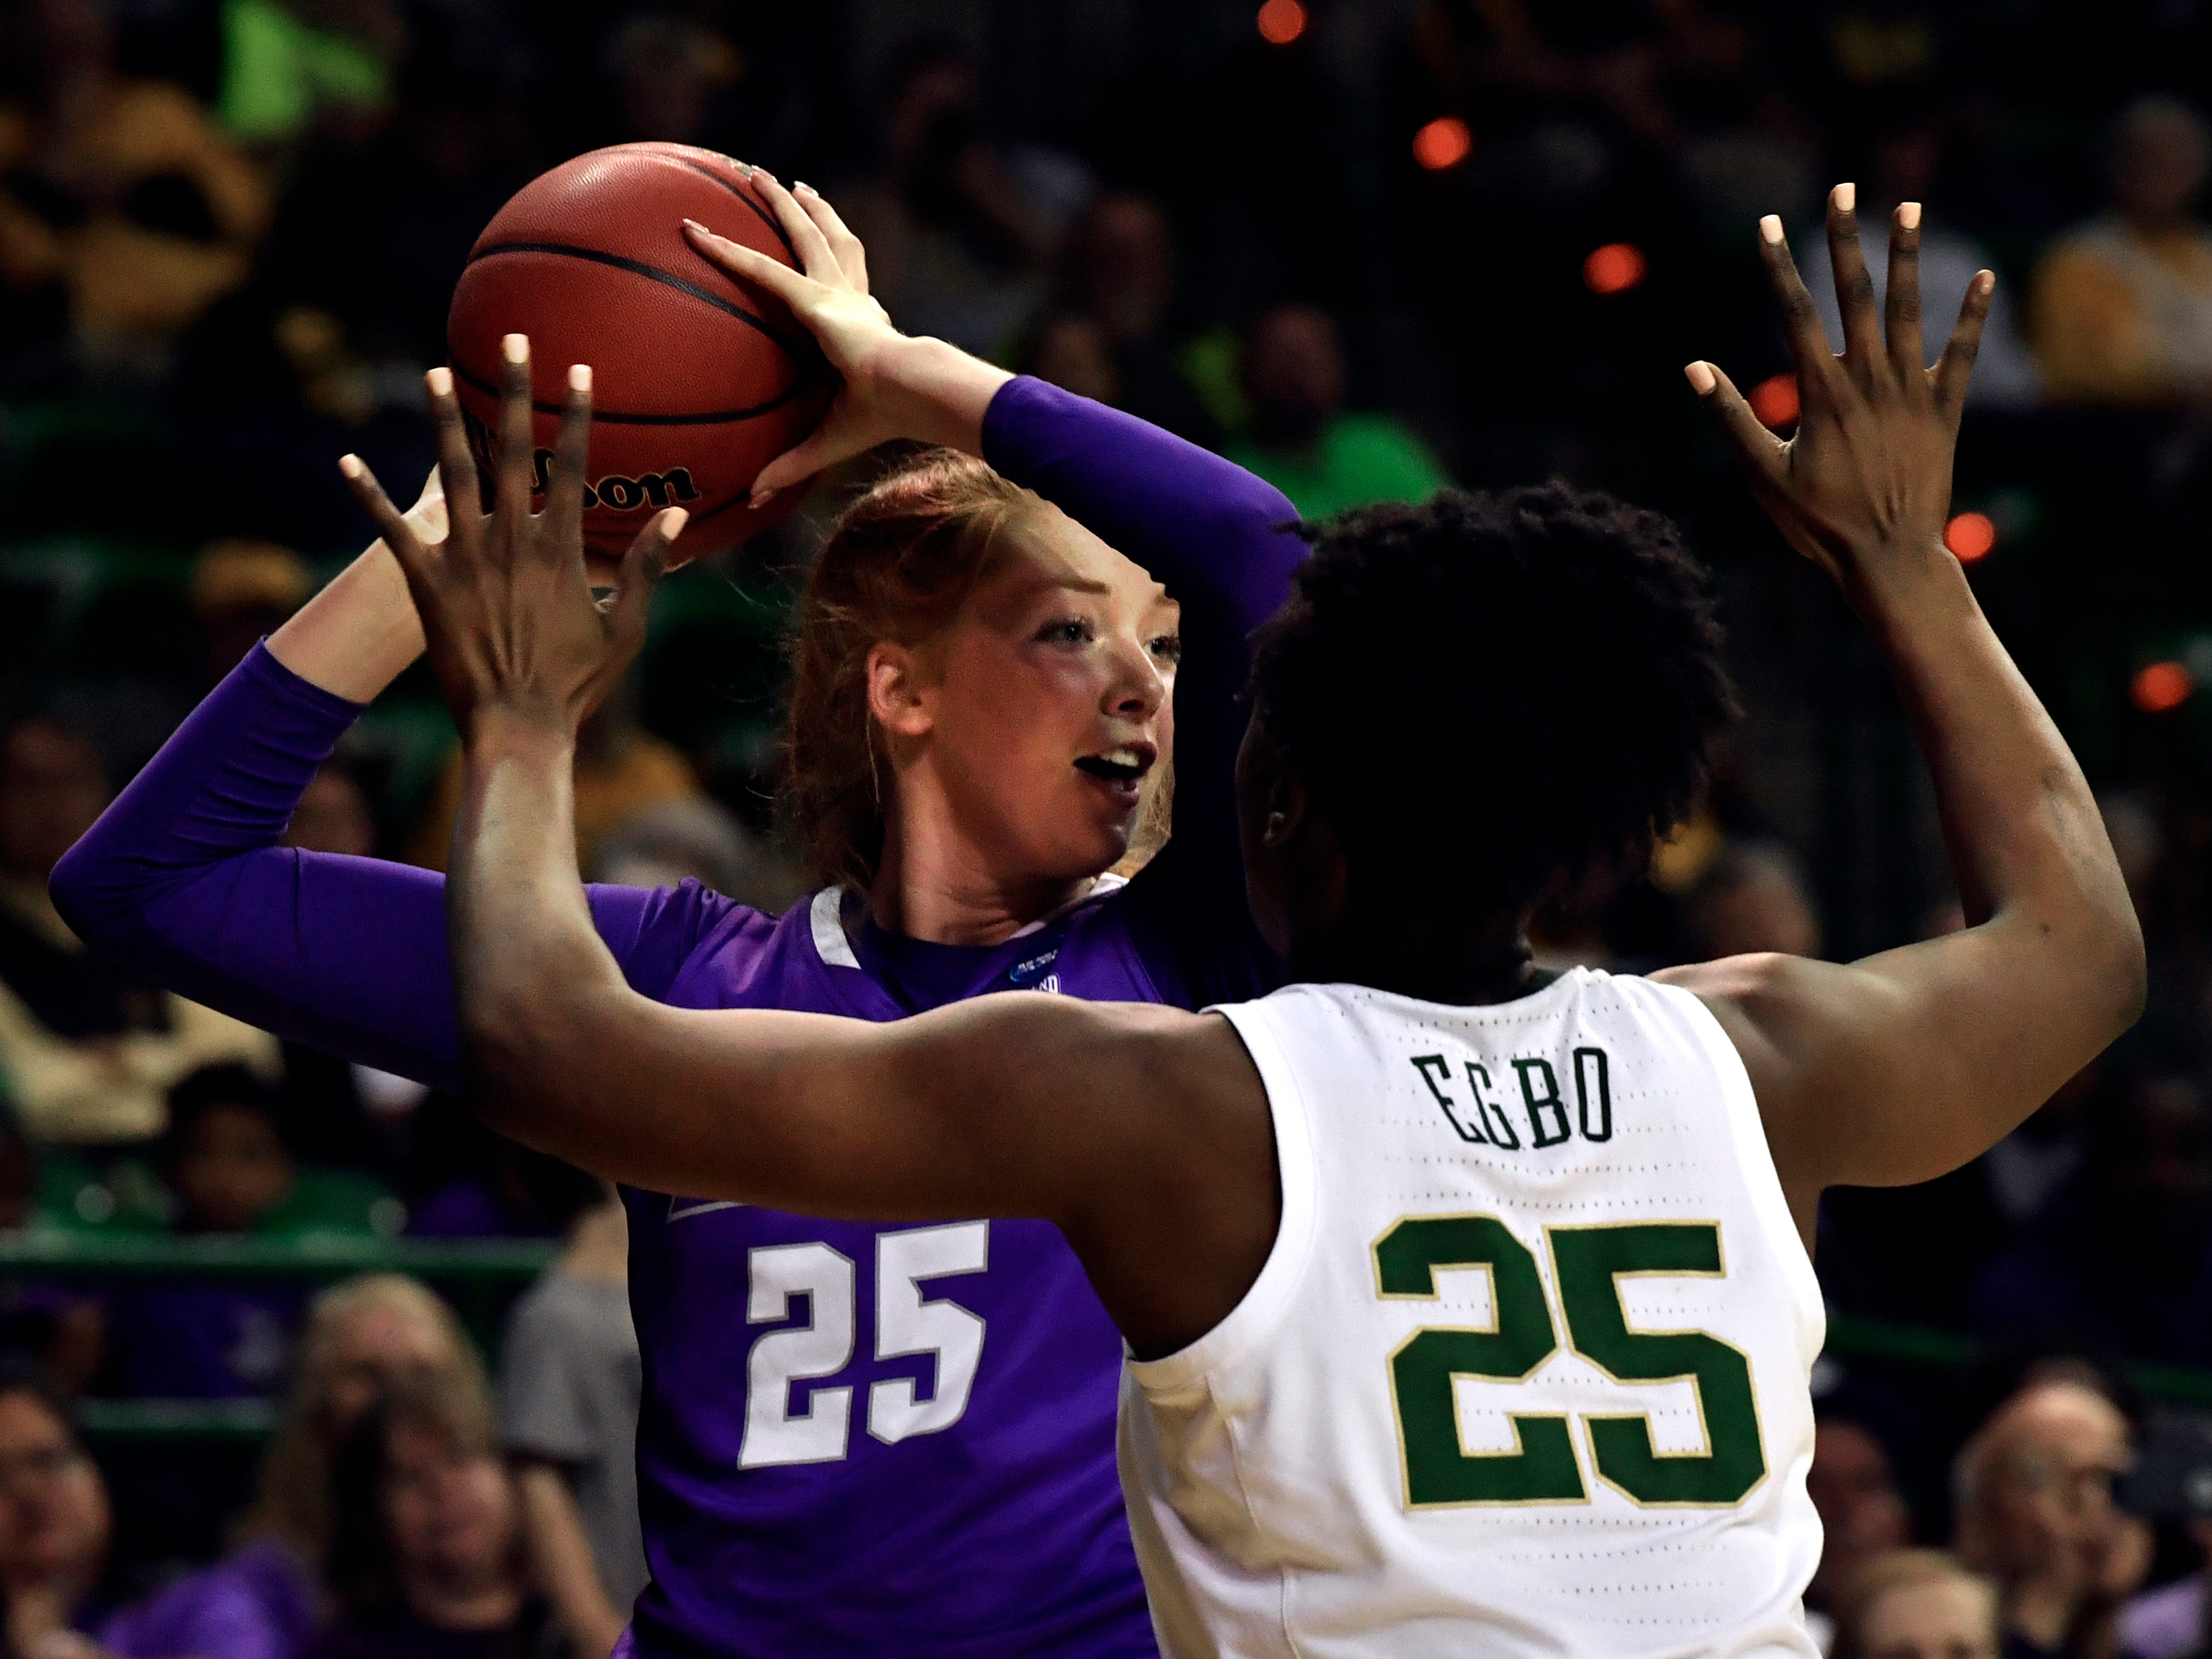 ACU center Lexi Kirgan looks for an opening past Baylor's Queen Egbo during Saturday's NCAA Tournament women's round 1 basketball game March 23, 2019. Baylor defeated Abilene Christian University, 95-38.